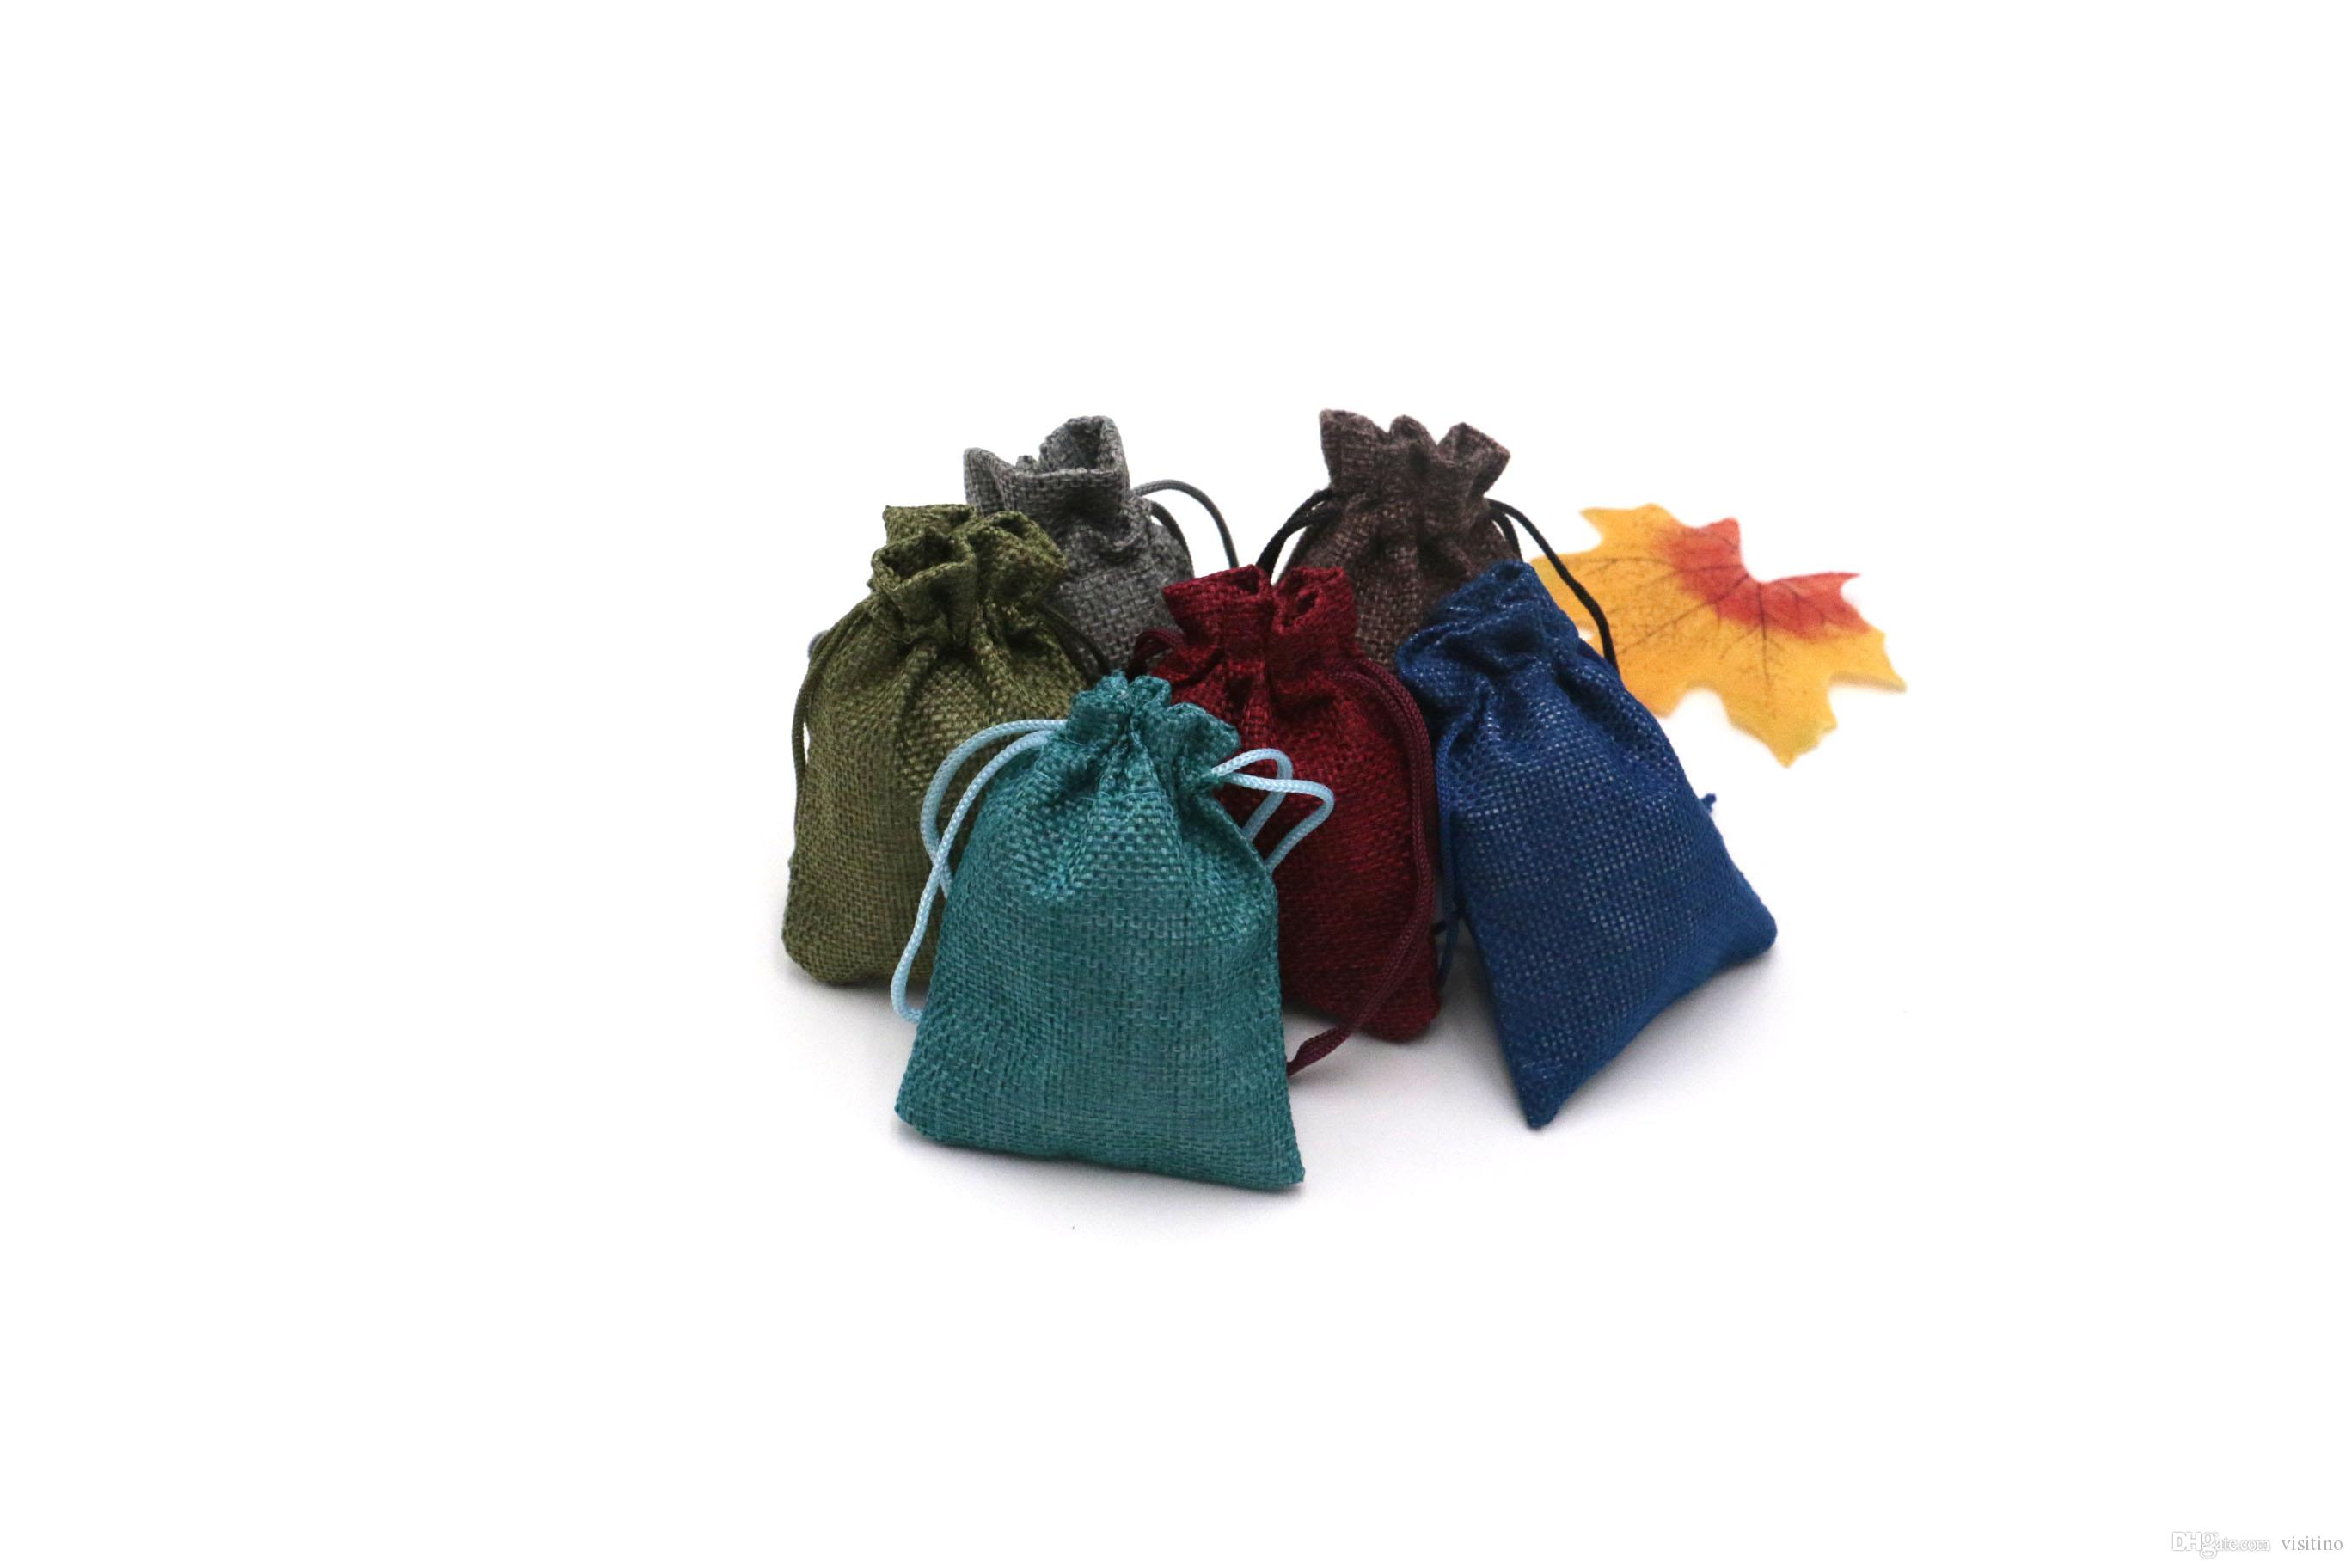 100Pcs/lot Mini Burlap Sacks Wedding Party Jewelry Accessory Packing Pouch Jute Hemp Drawable Small Gift Packaging Bag